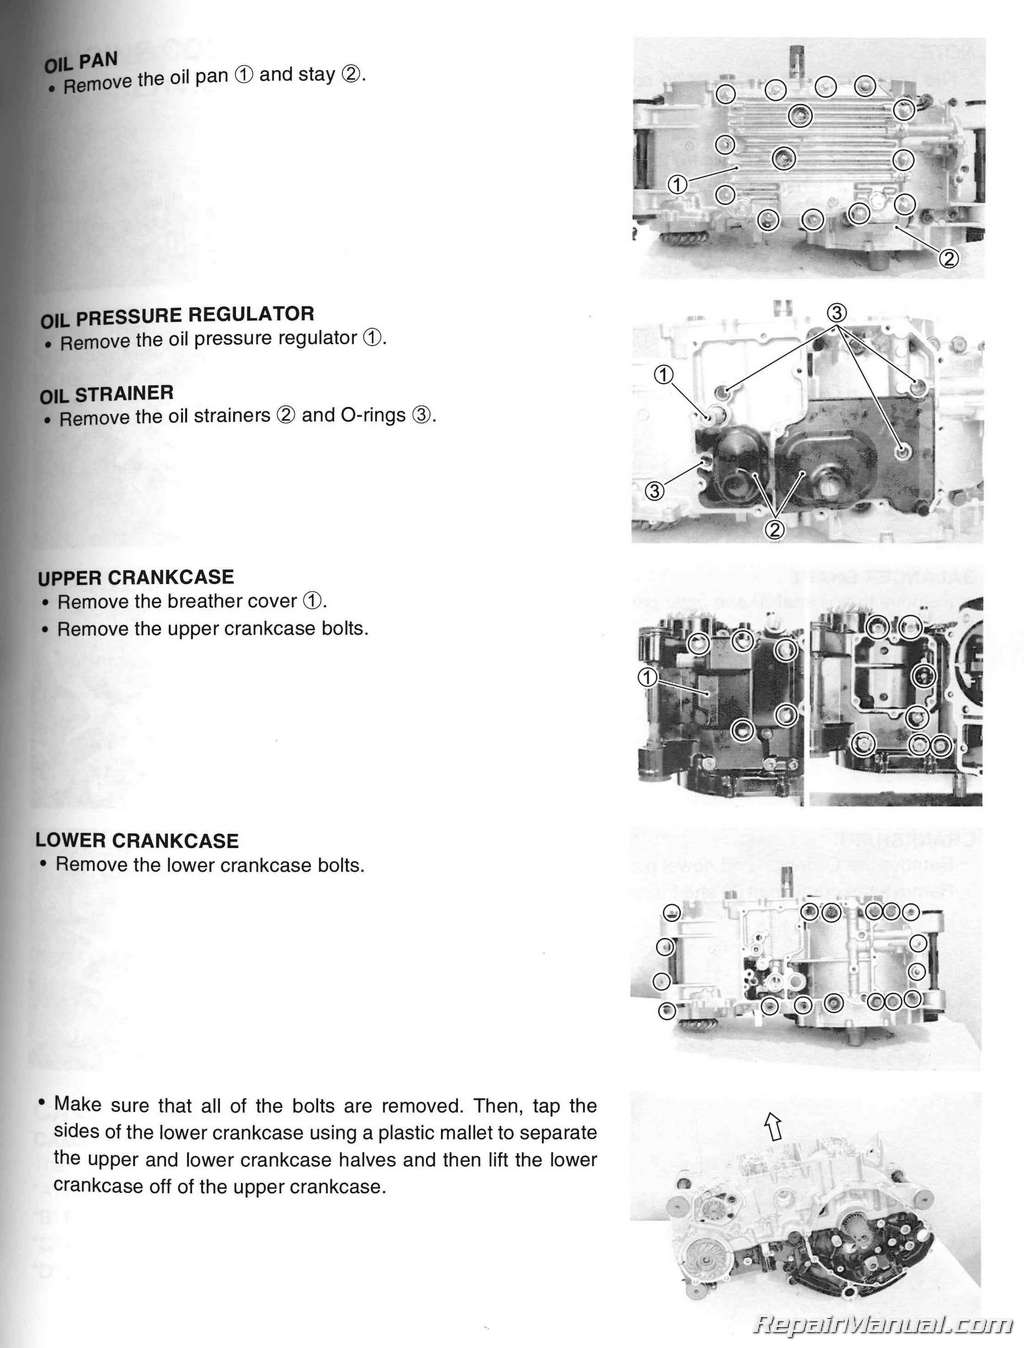 Honda 4514 Wiring Diagram Library